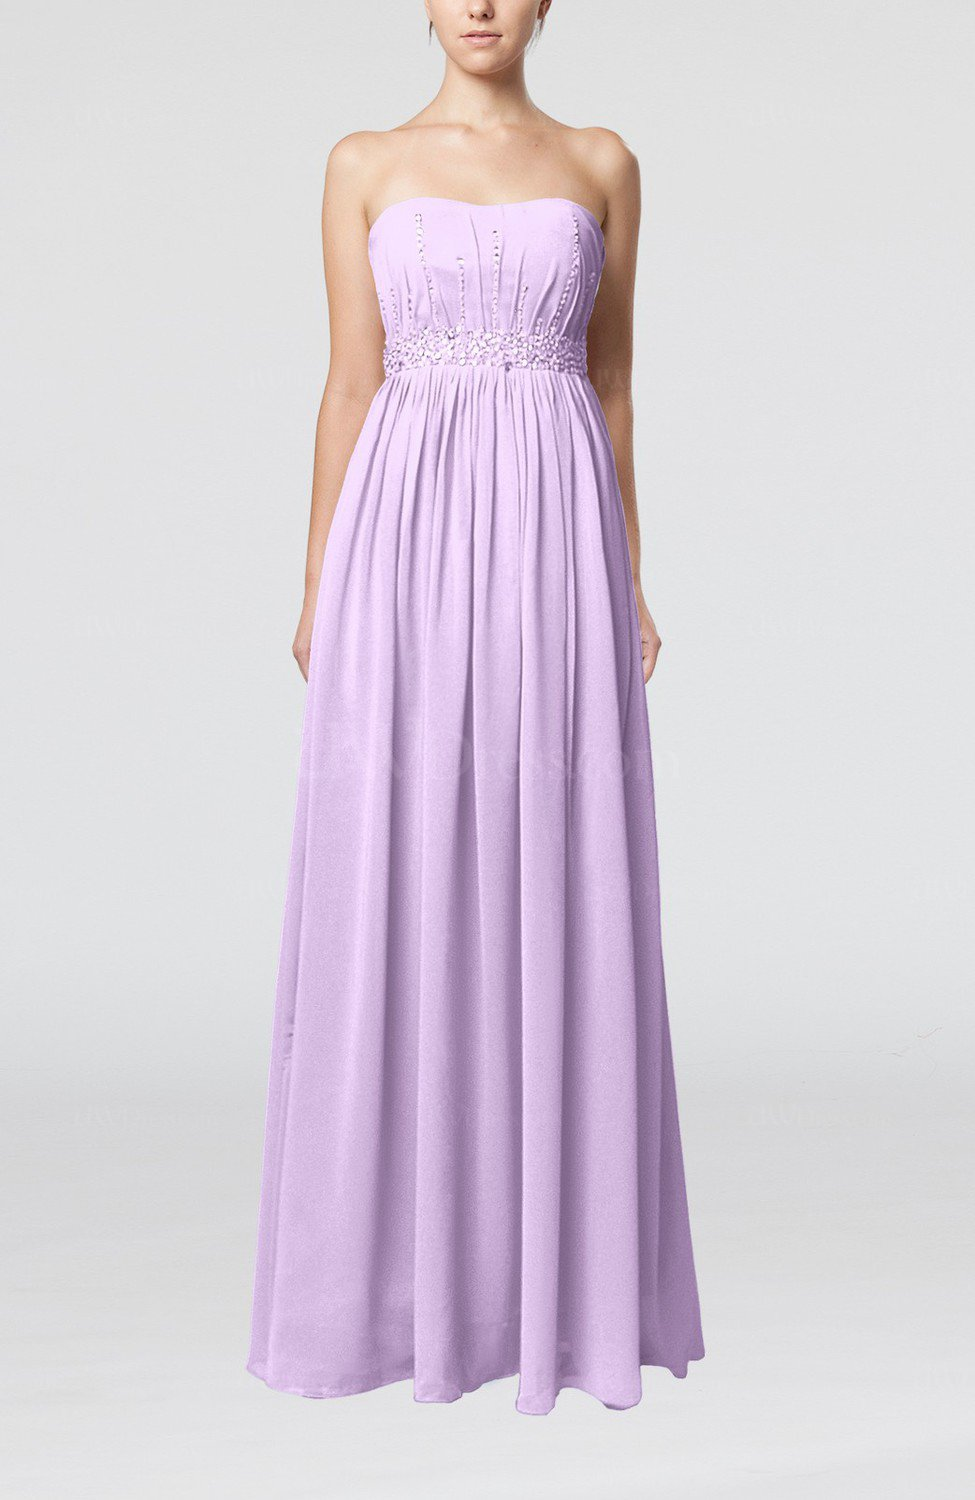 light purple elegant strapless sleeveless chiffon sequin